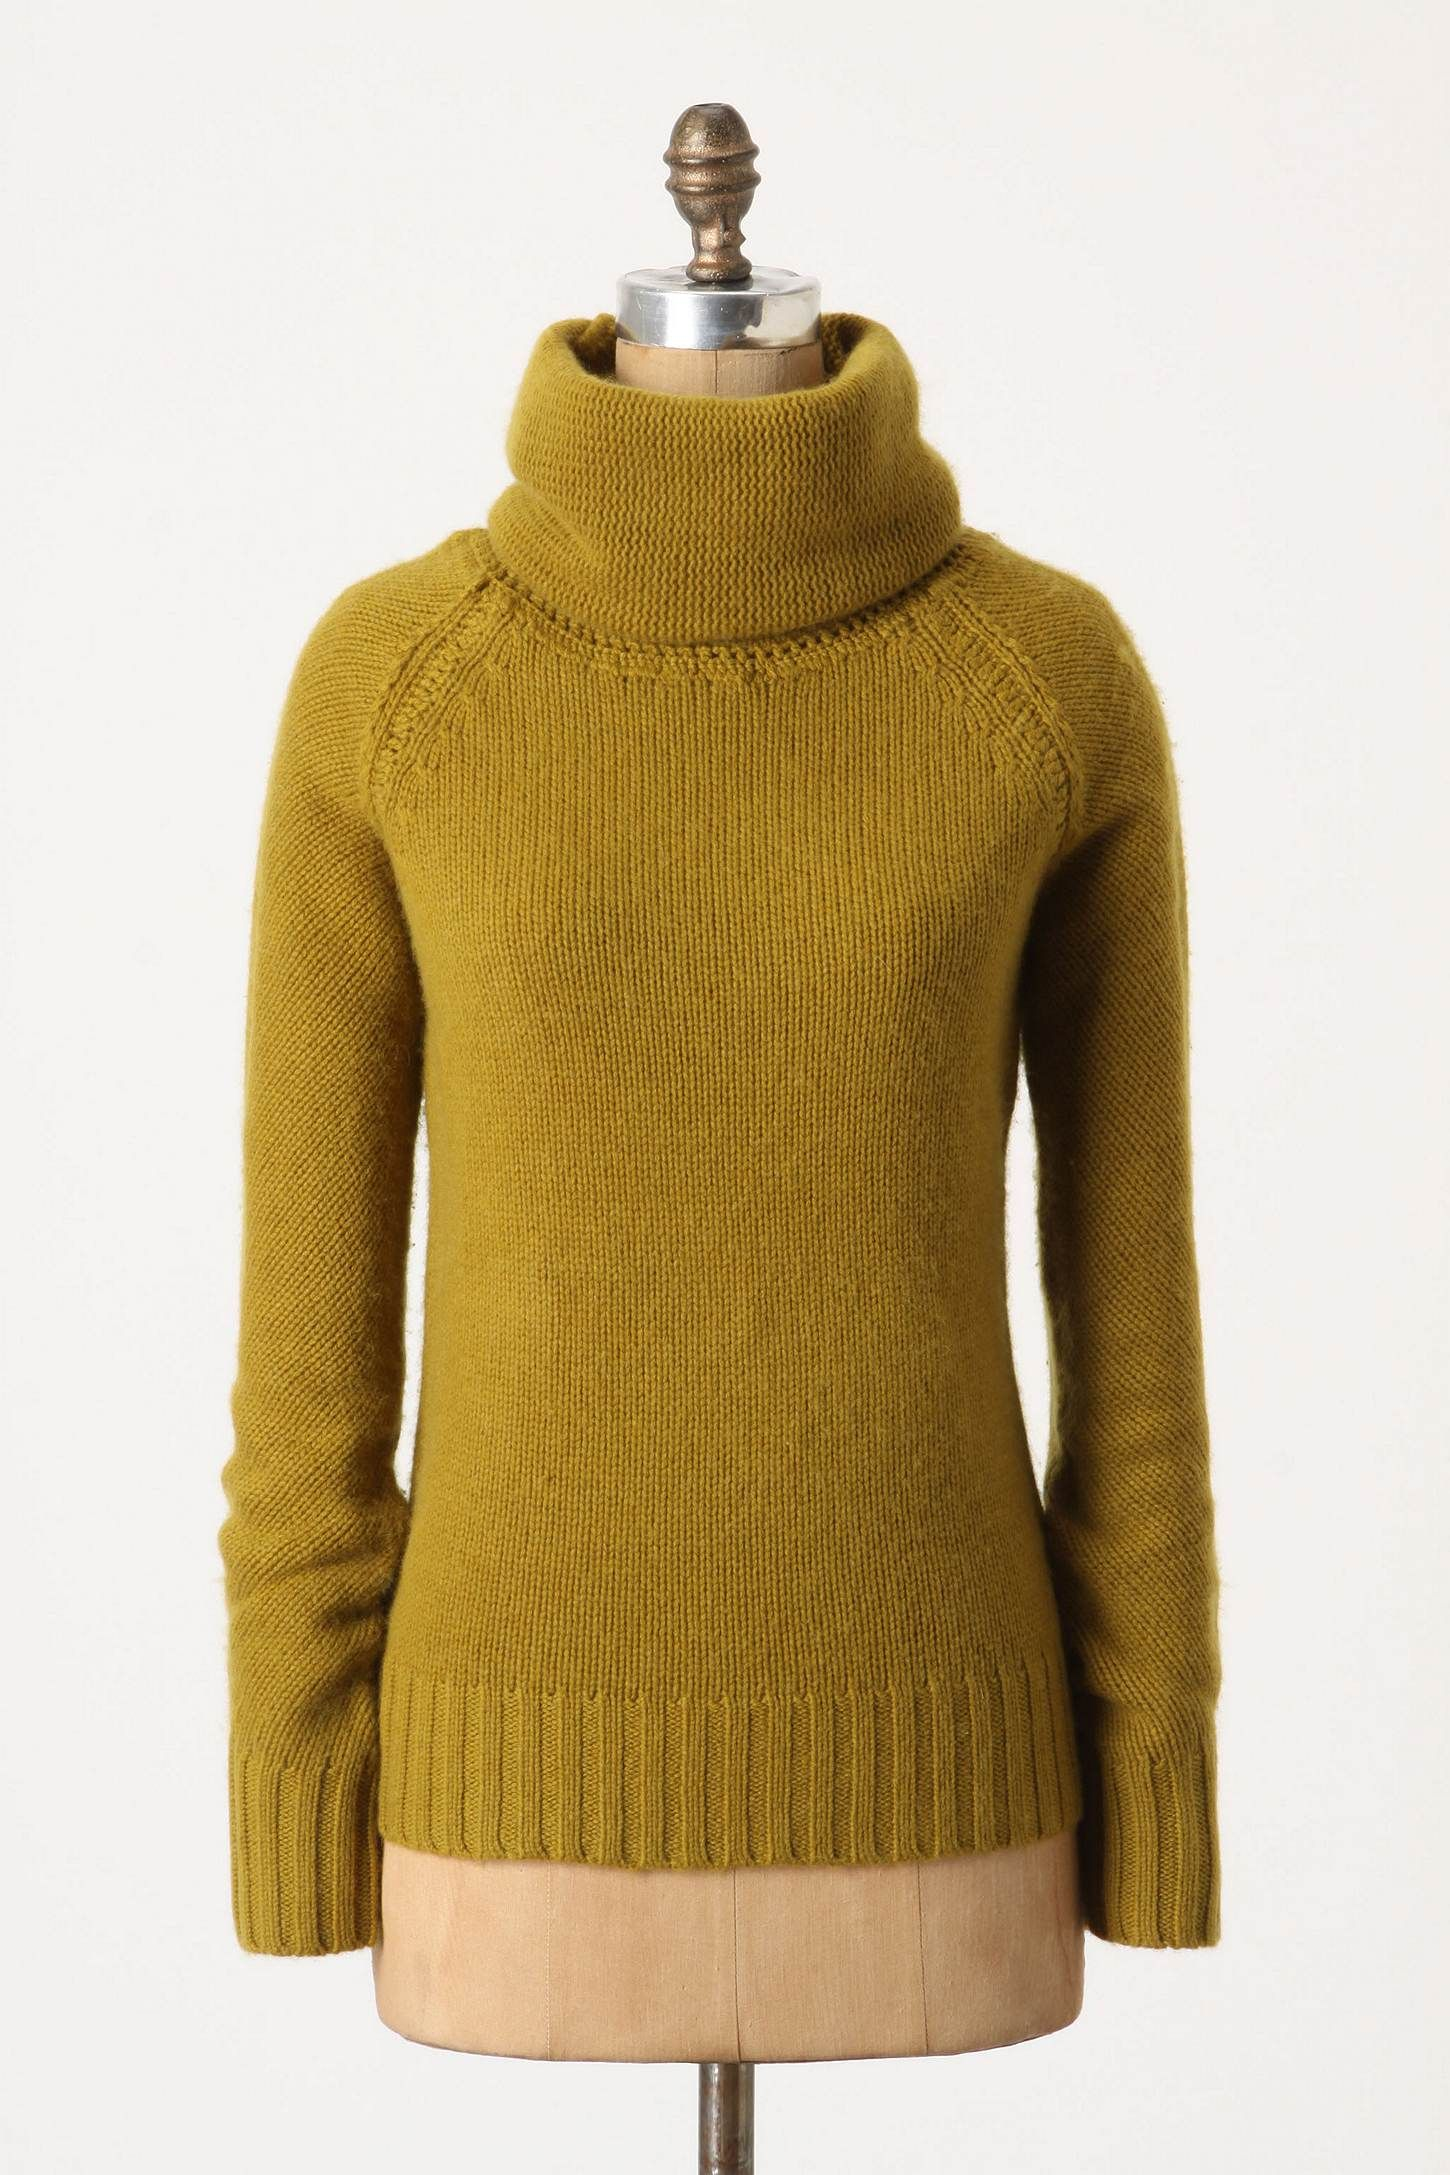 classic go-to sweater without the itchy material (cashmere is so soft)!